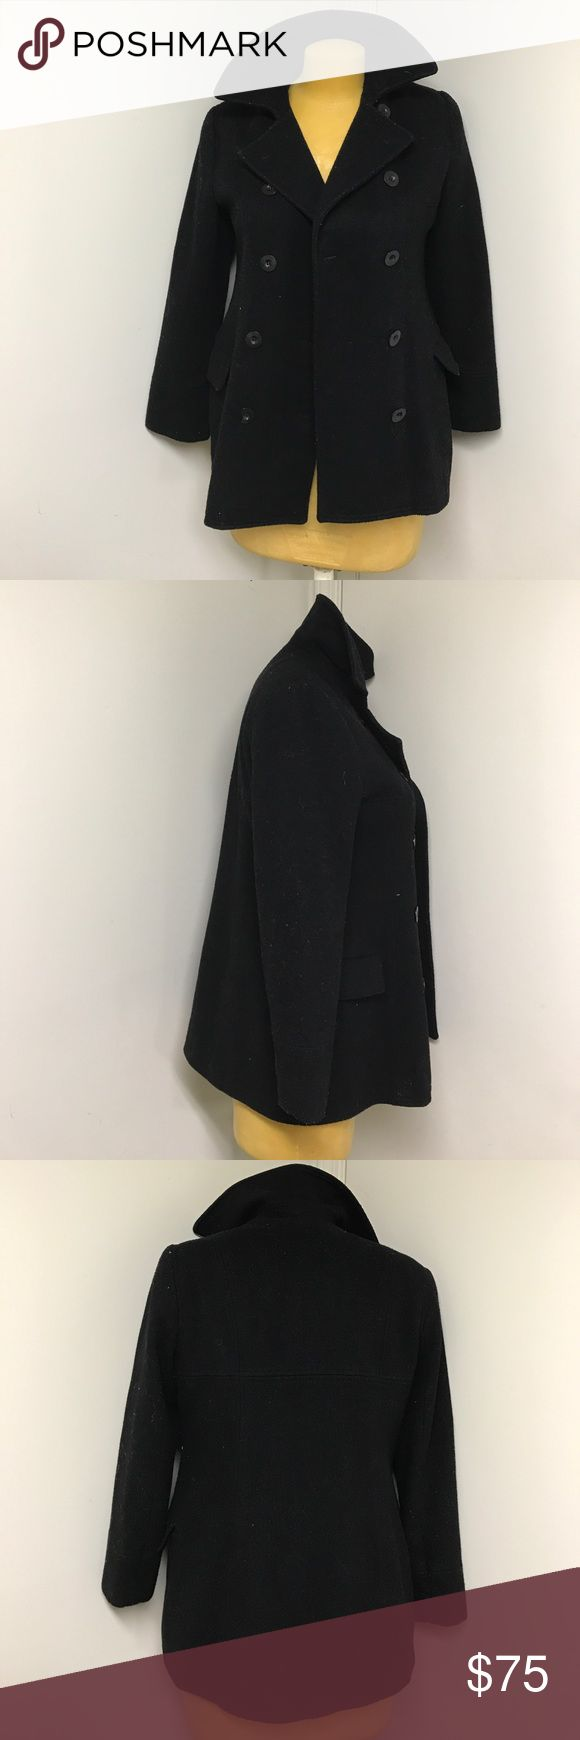 NOT FOR SALE - New York & Company Black Pea Coat Just what you need for the winter!  This coat is dry clean only. If you are seriously interested let me know and I will have it dry cleaned before the sale. I just don't want to lower my average shipping time :) New York & Company Jackets & Coats Pea Coats